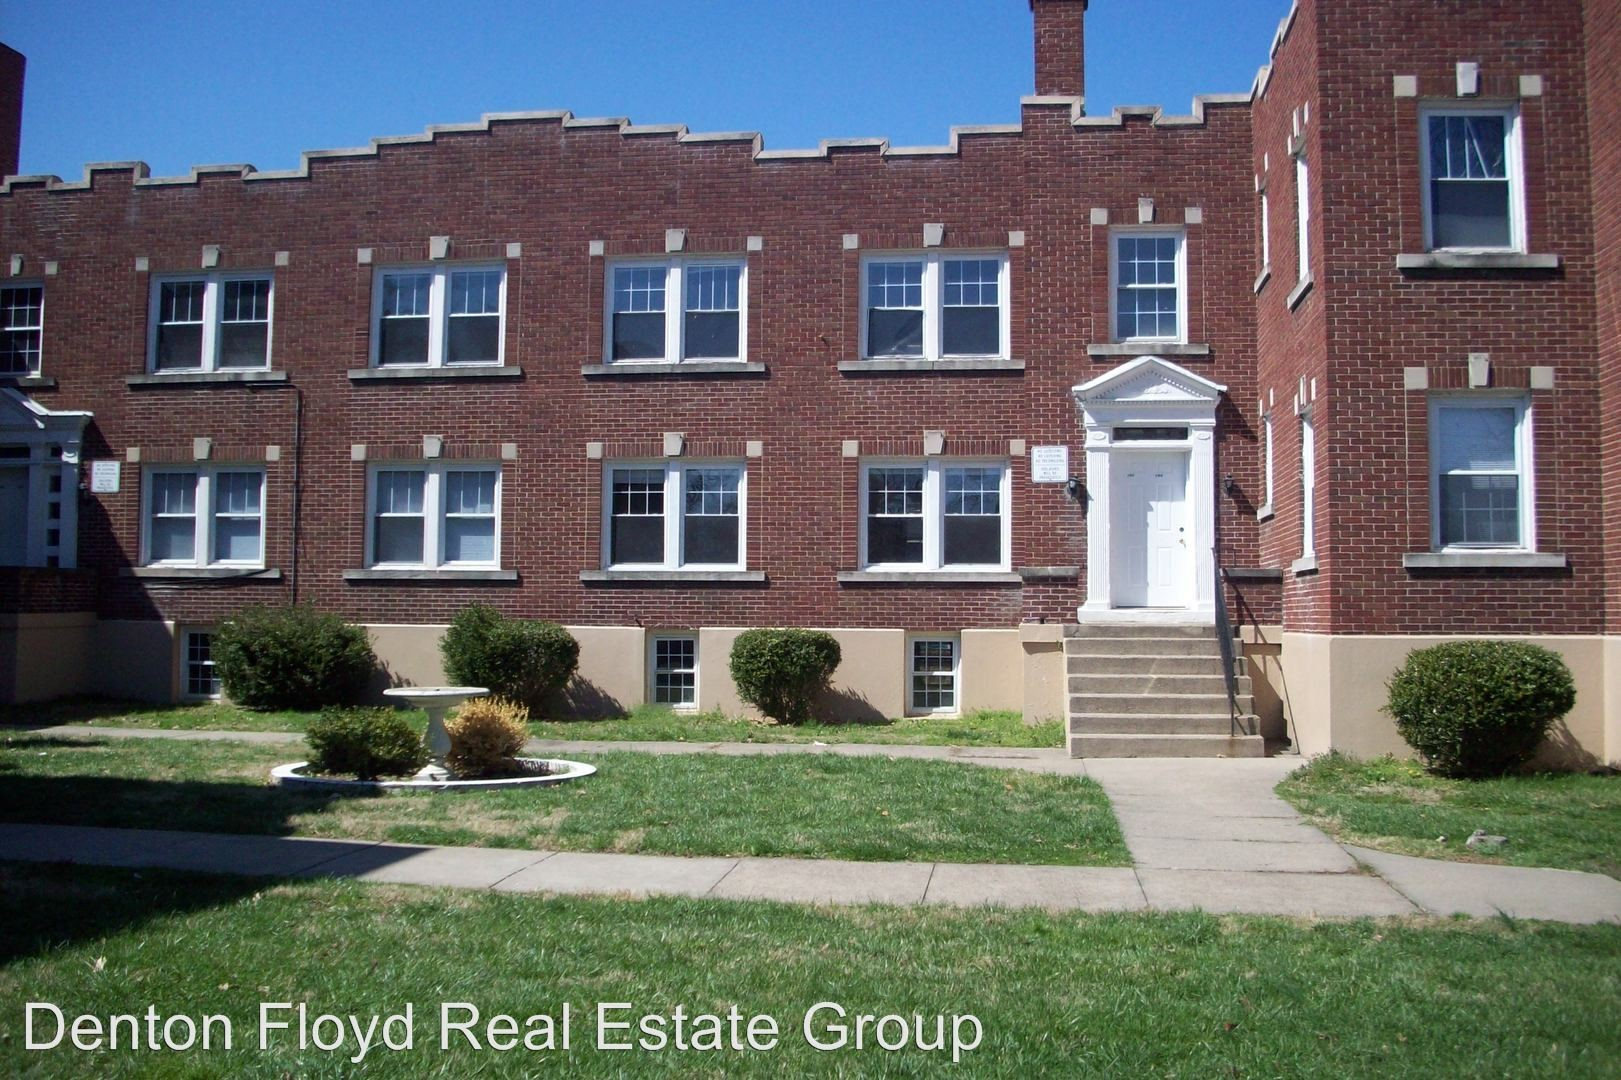 607 s 44th st louisville ky 40211 2 bedroom apartment - 1 bedroom apartment louisville ky ...